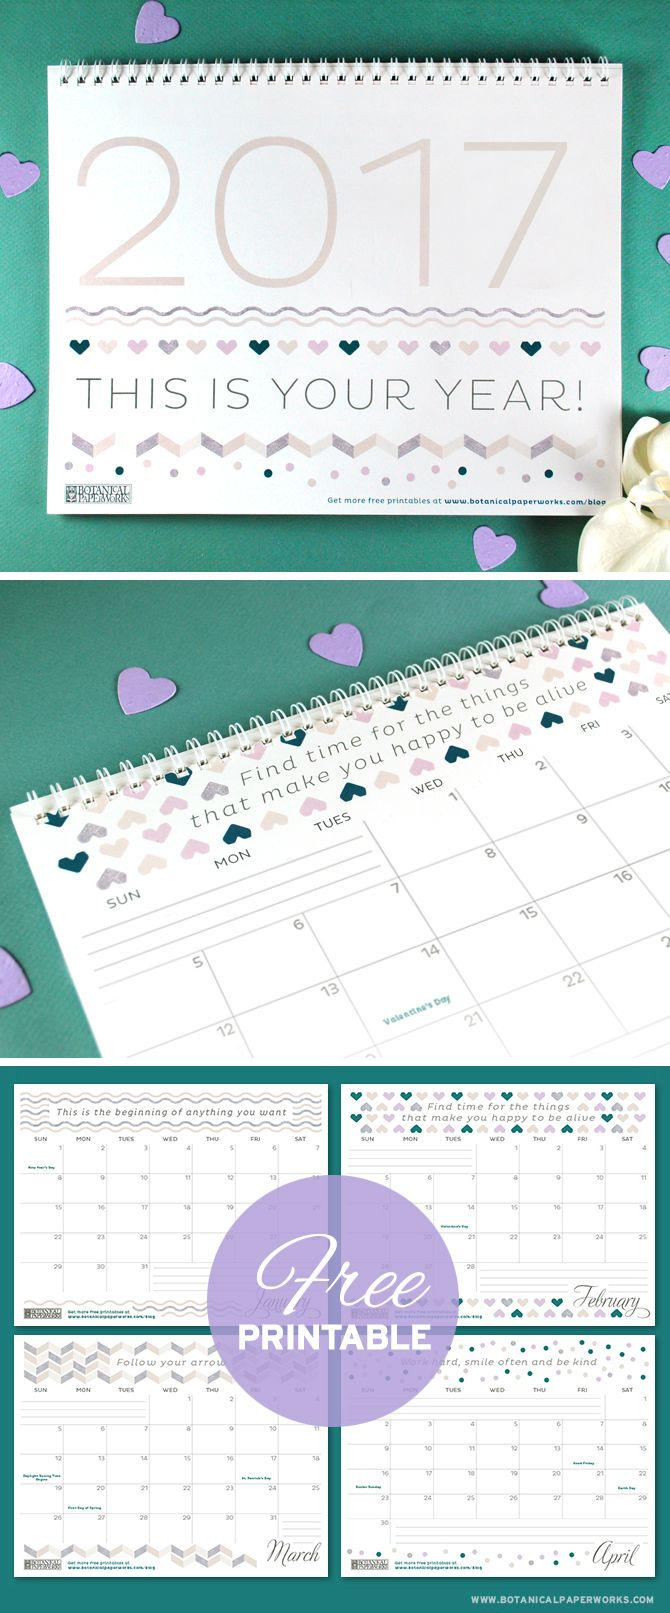 17 Best ideas about Printable Calendars – Printable Calendars